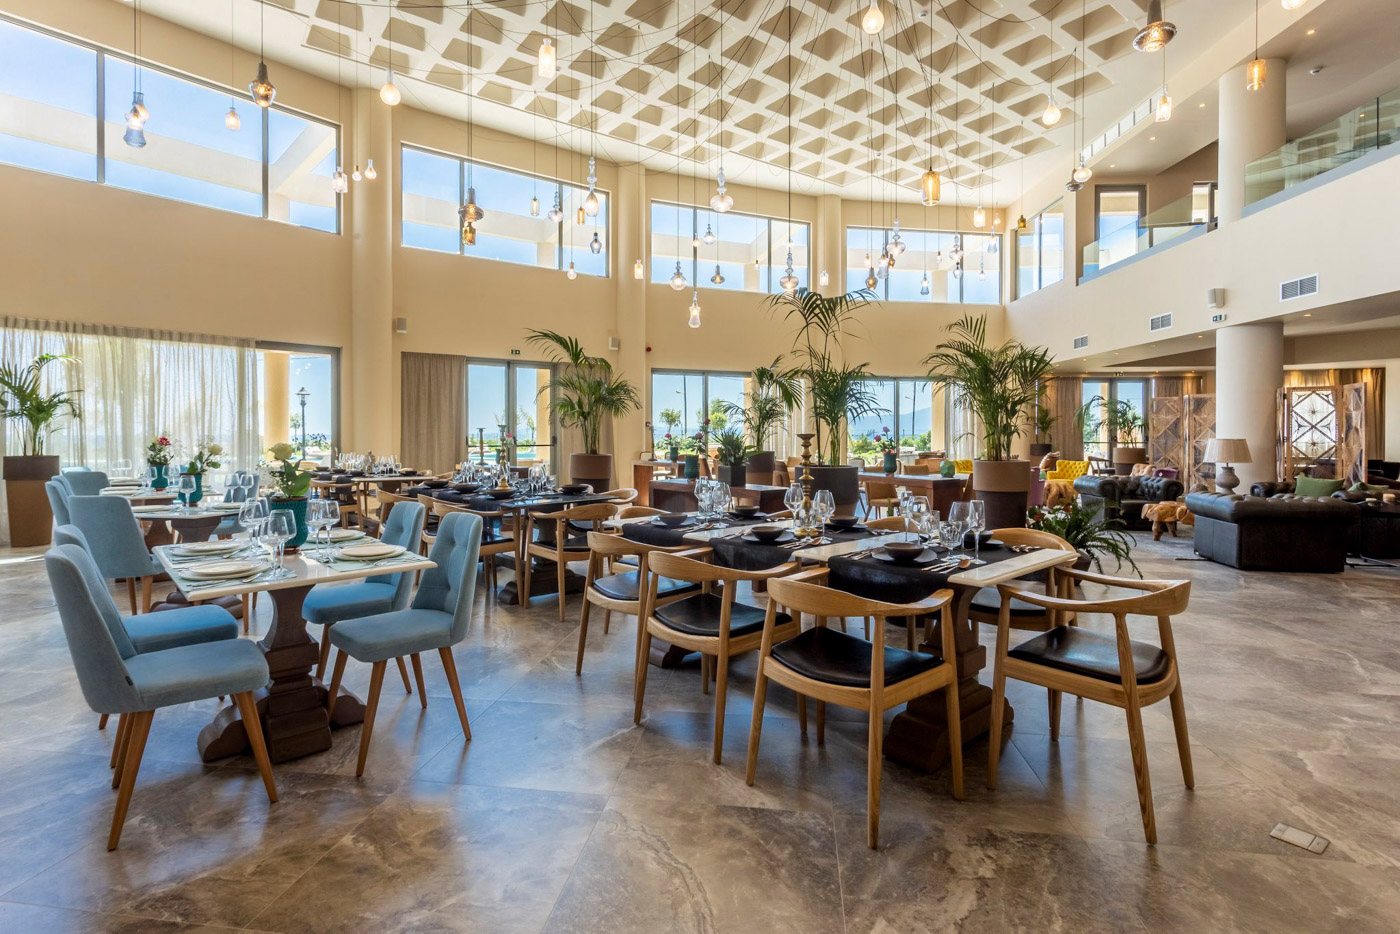 Elysian luxury hotel and spa Kalamata restaurant